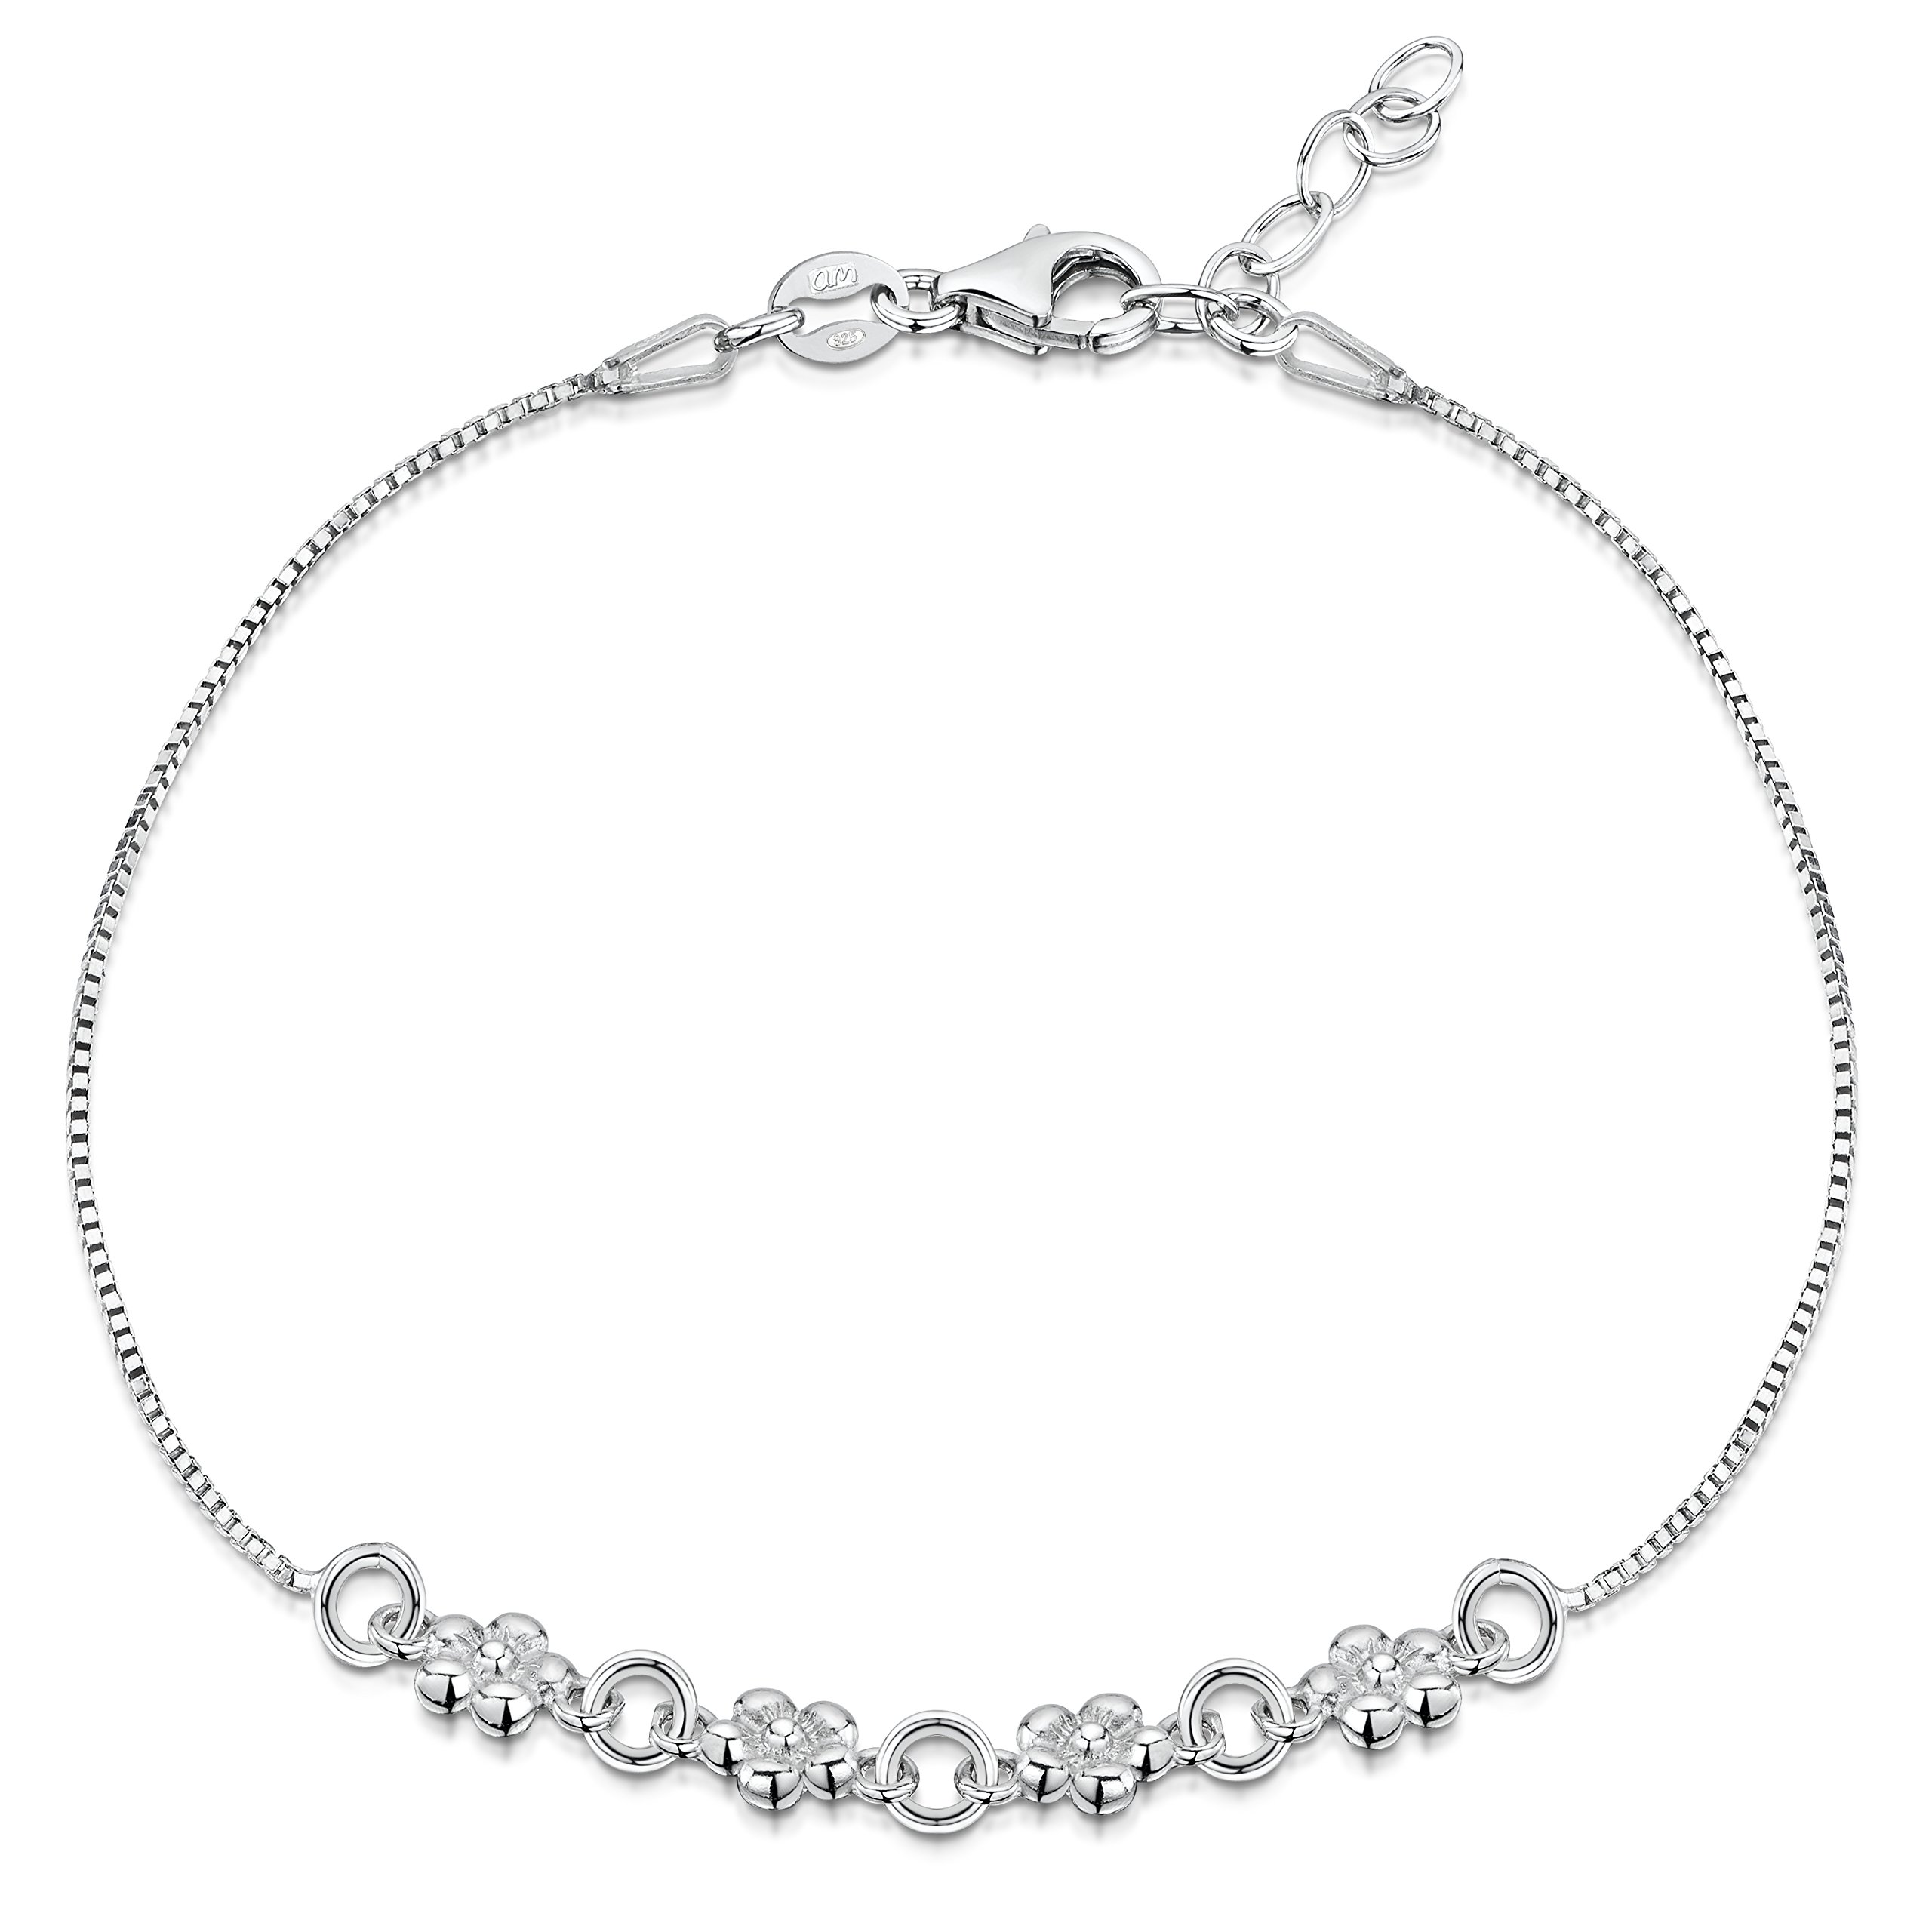 Amberta 925 Sterling Silver Adjustable Ankle Bracelet - 1 mm Box Chain Anklet with Flowers - 9'' to 10'' inch - Flexible Fit